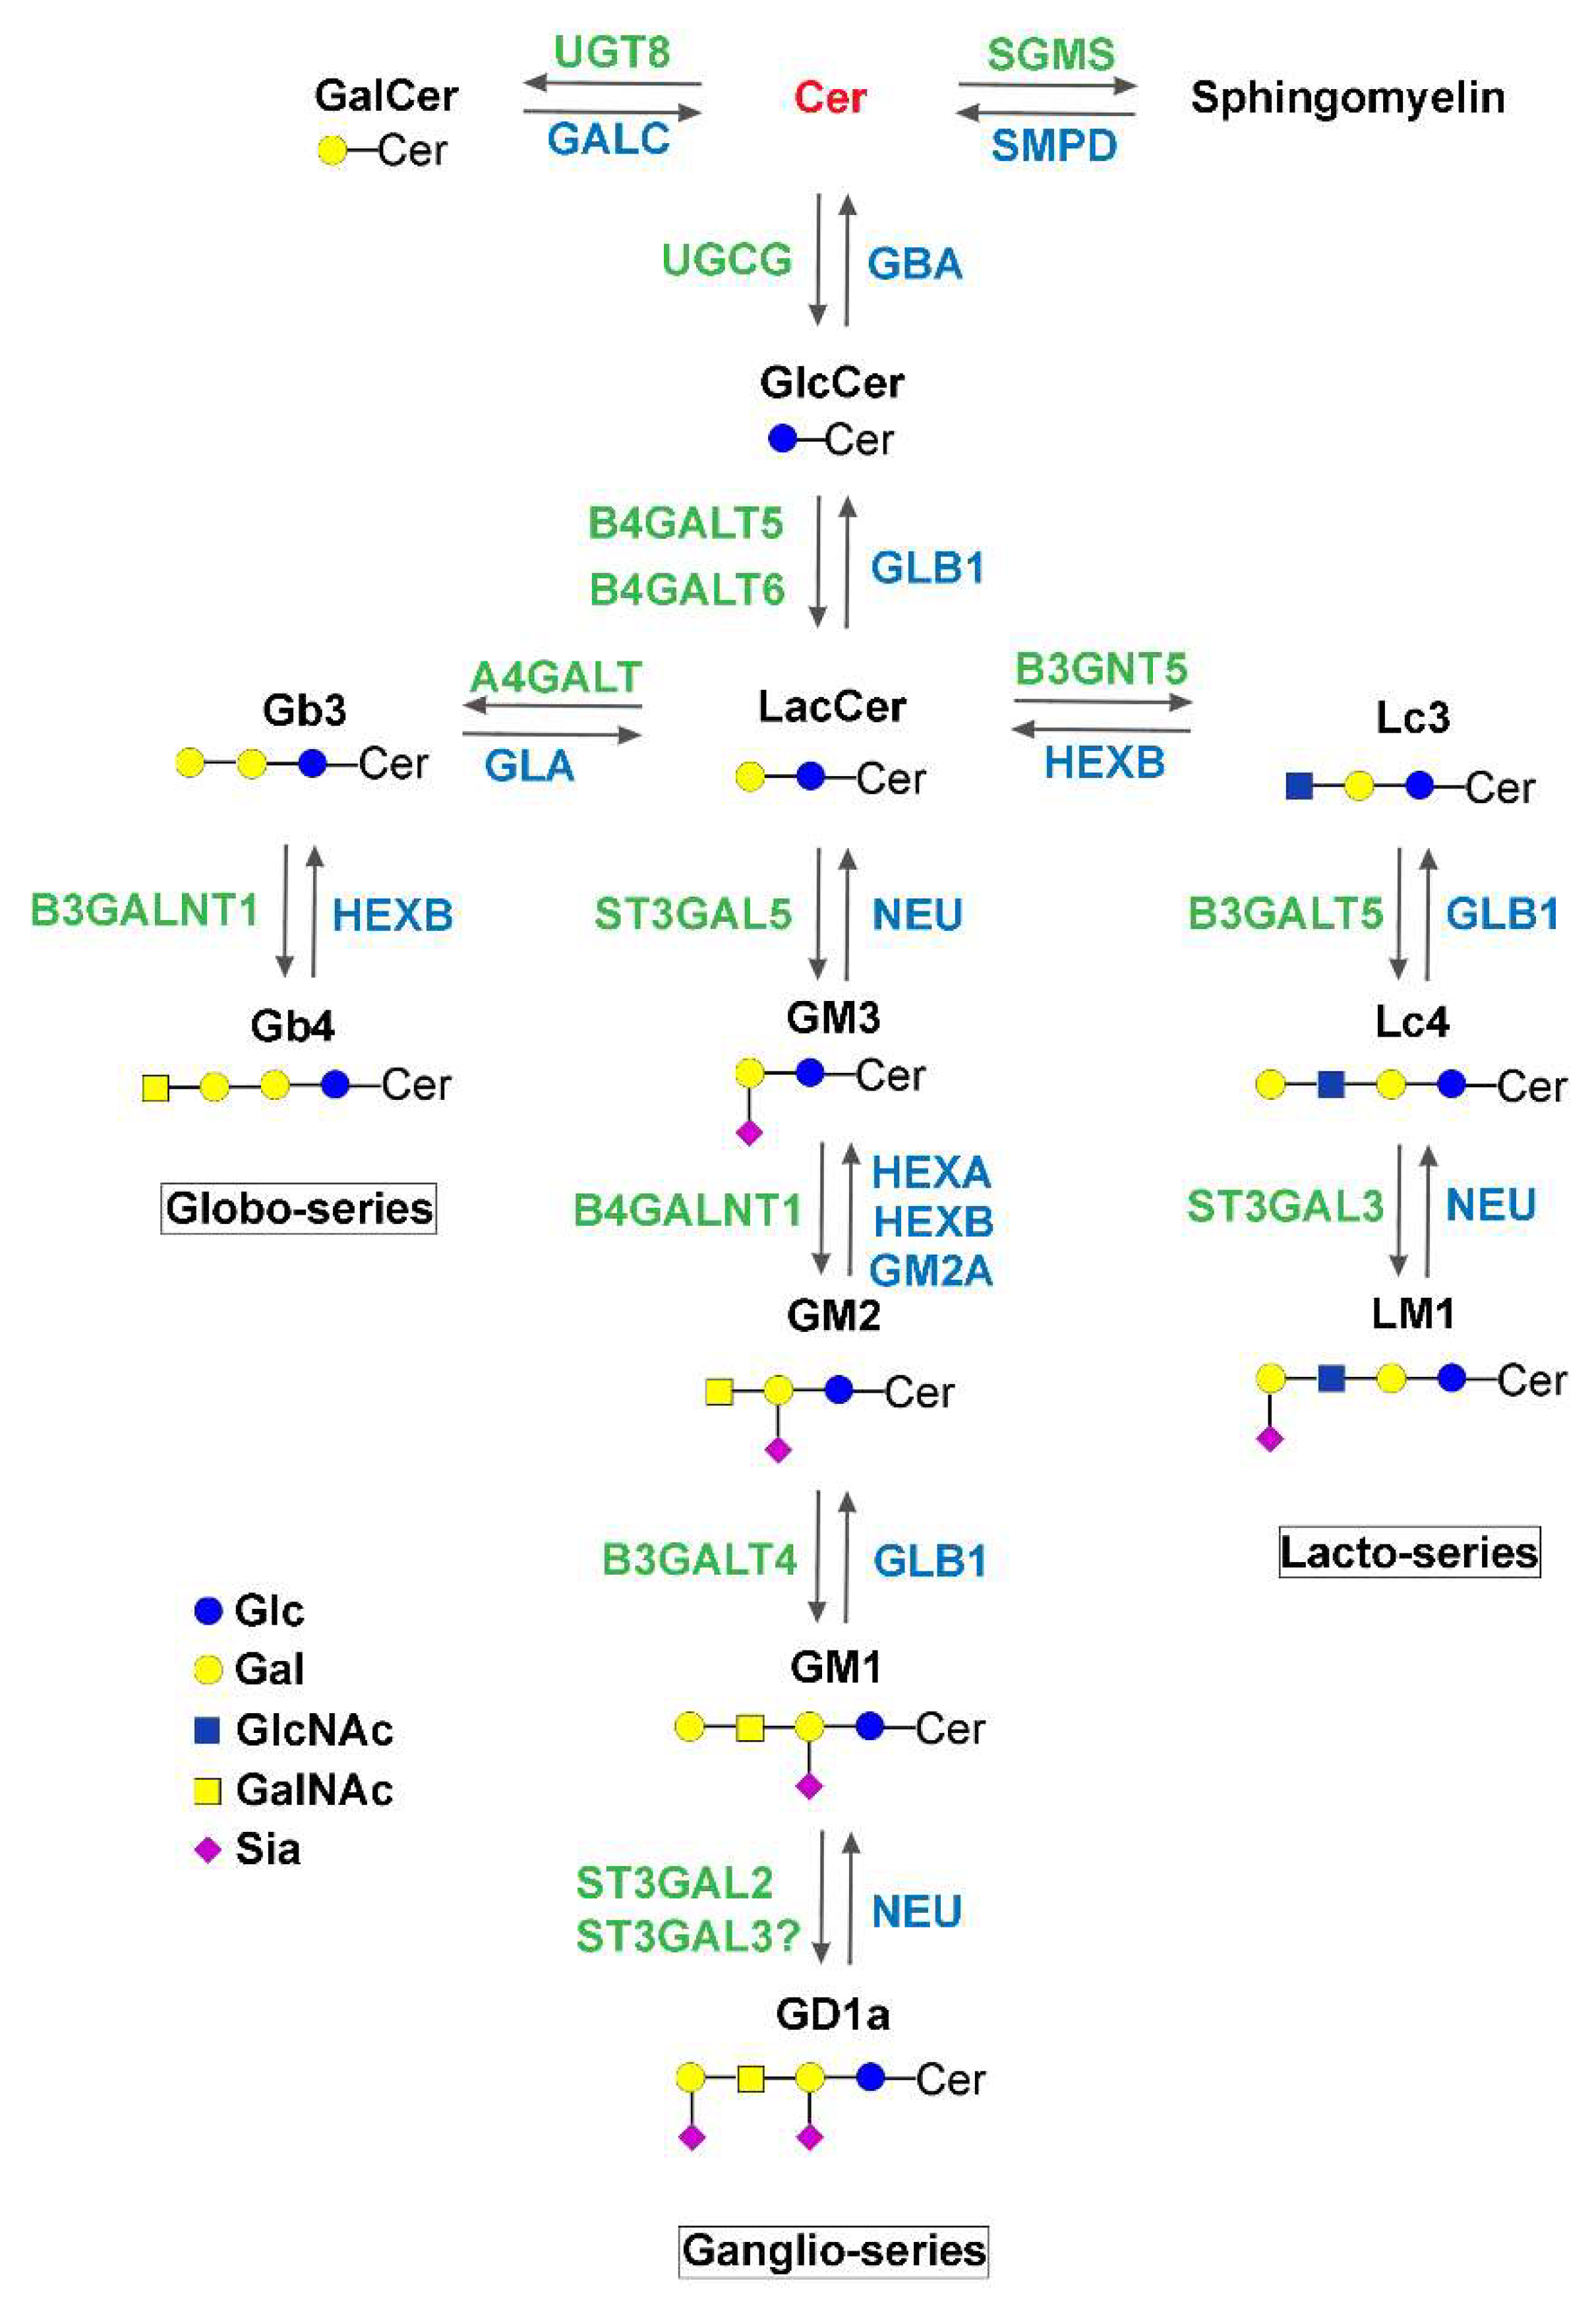 IJMS | Free Full-Text | The Link between Gaucher Disease and Parkinson's  Disease Sheds Light on Old and Novel Disorders of Sphingolipid Metabolism |  HTML